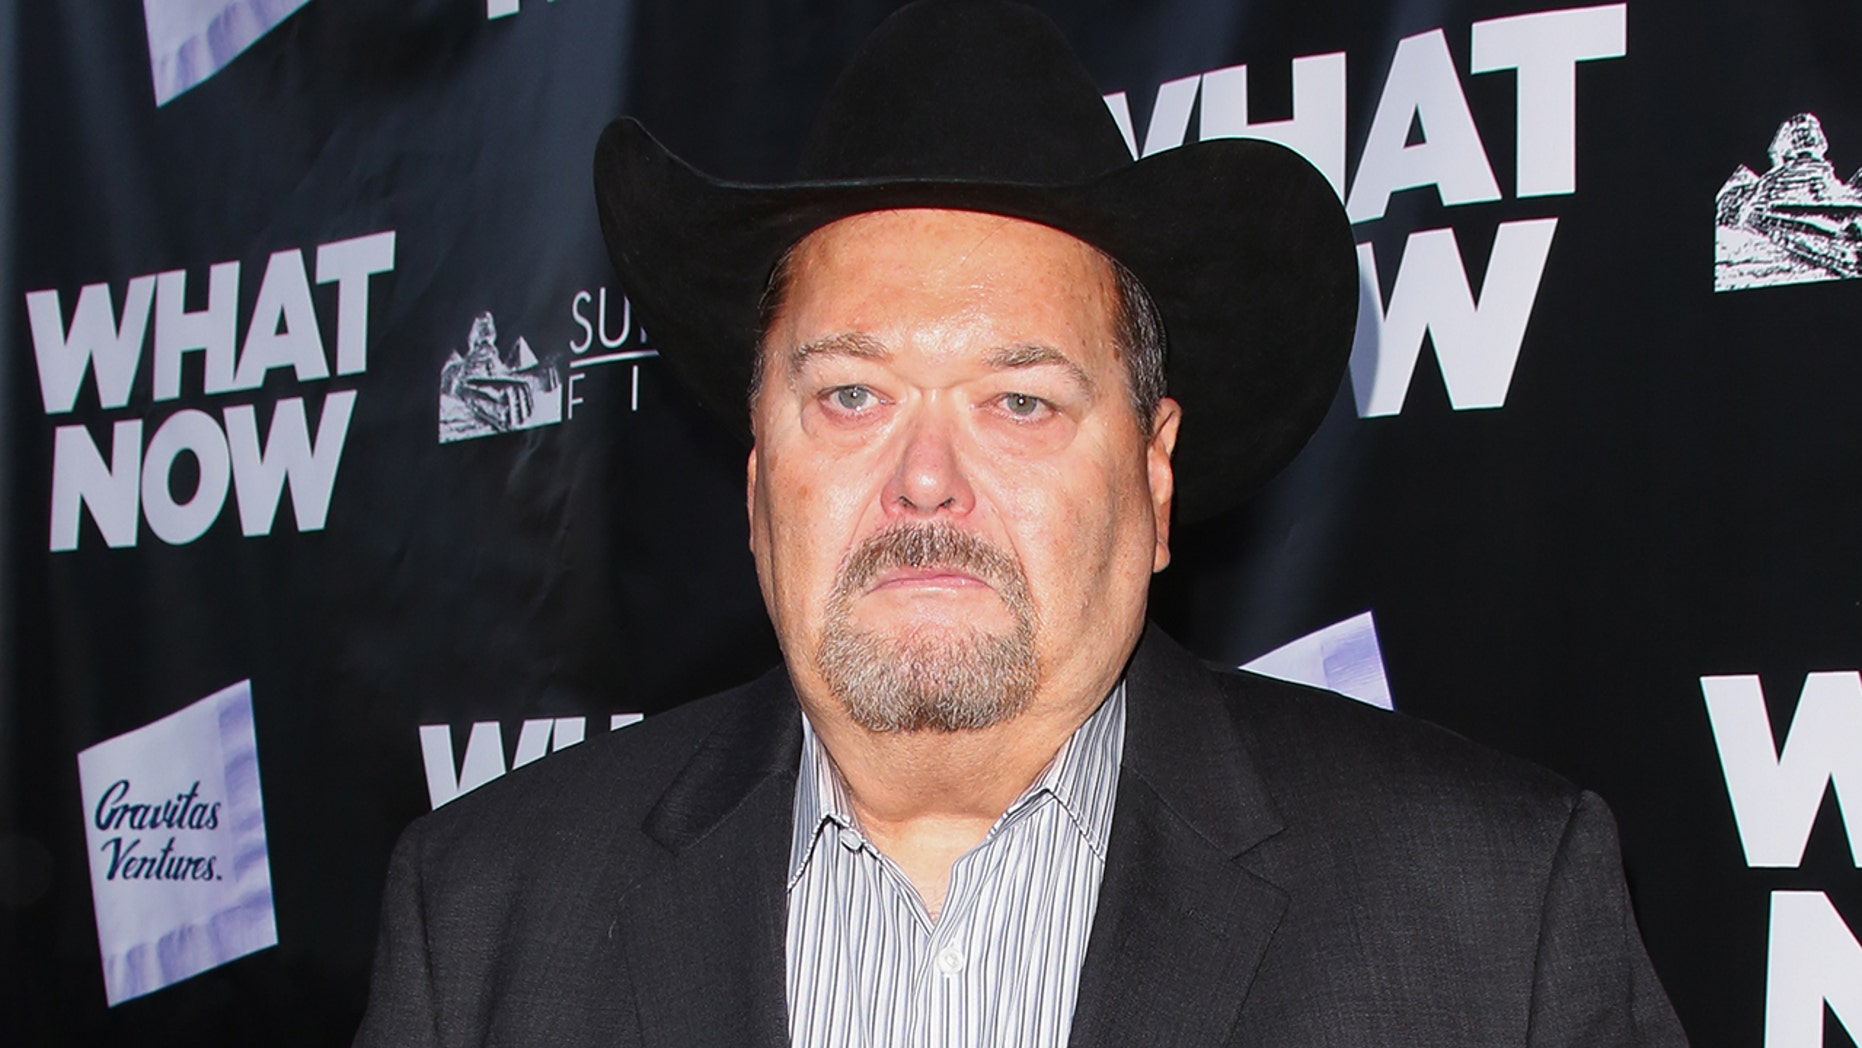 """Wrestling Commentator Jim Ross attends the premiere of """"What Now"""" at The Laemmle Music Hall on March 10, 2015 in Beverly Hills, California."""